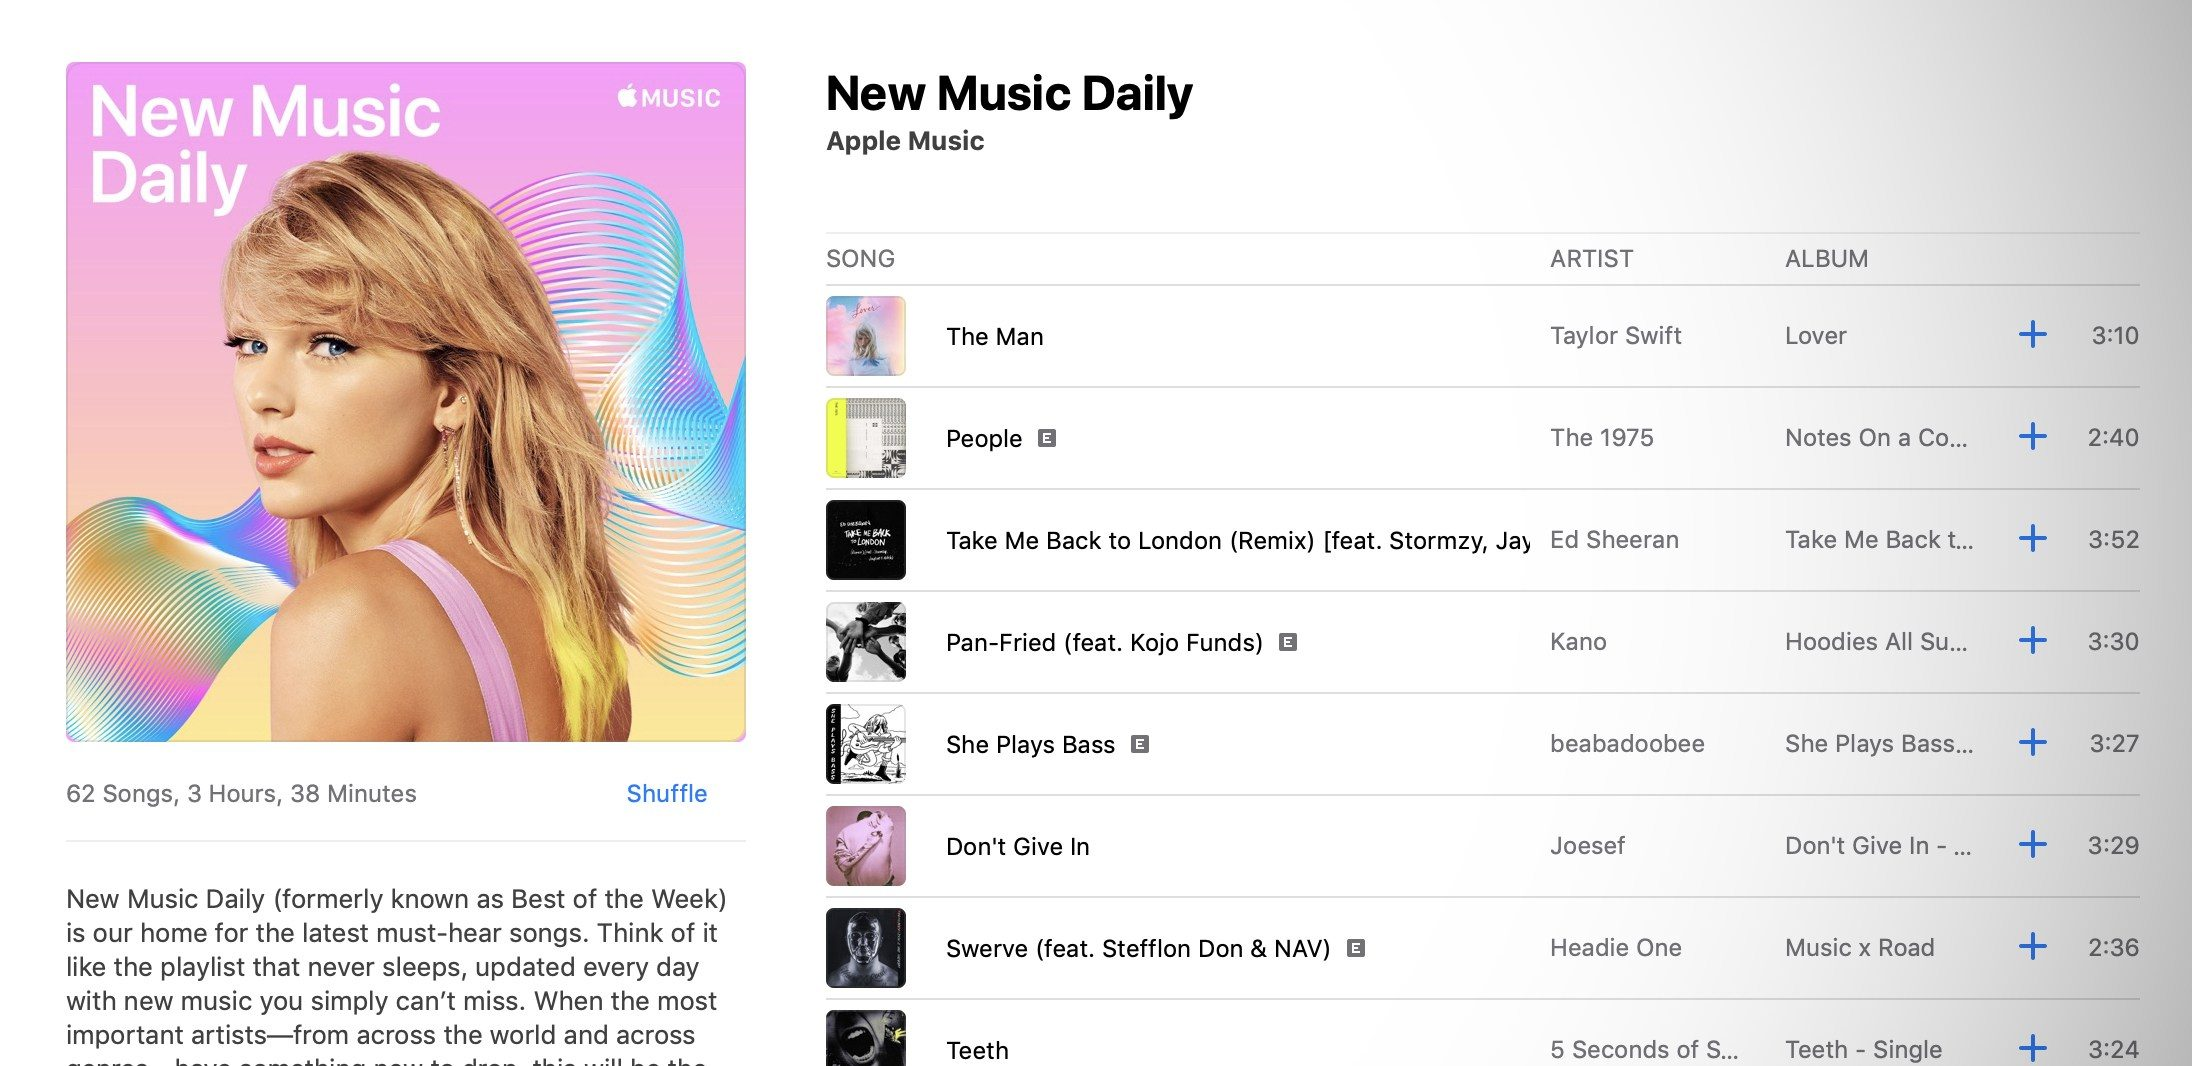 Apple Music New Music Daily